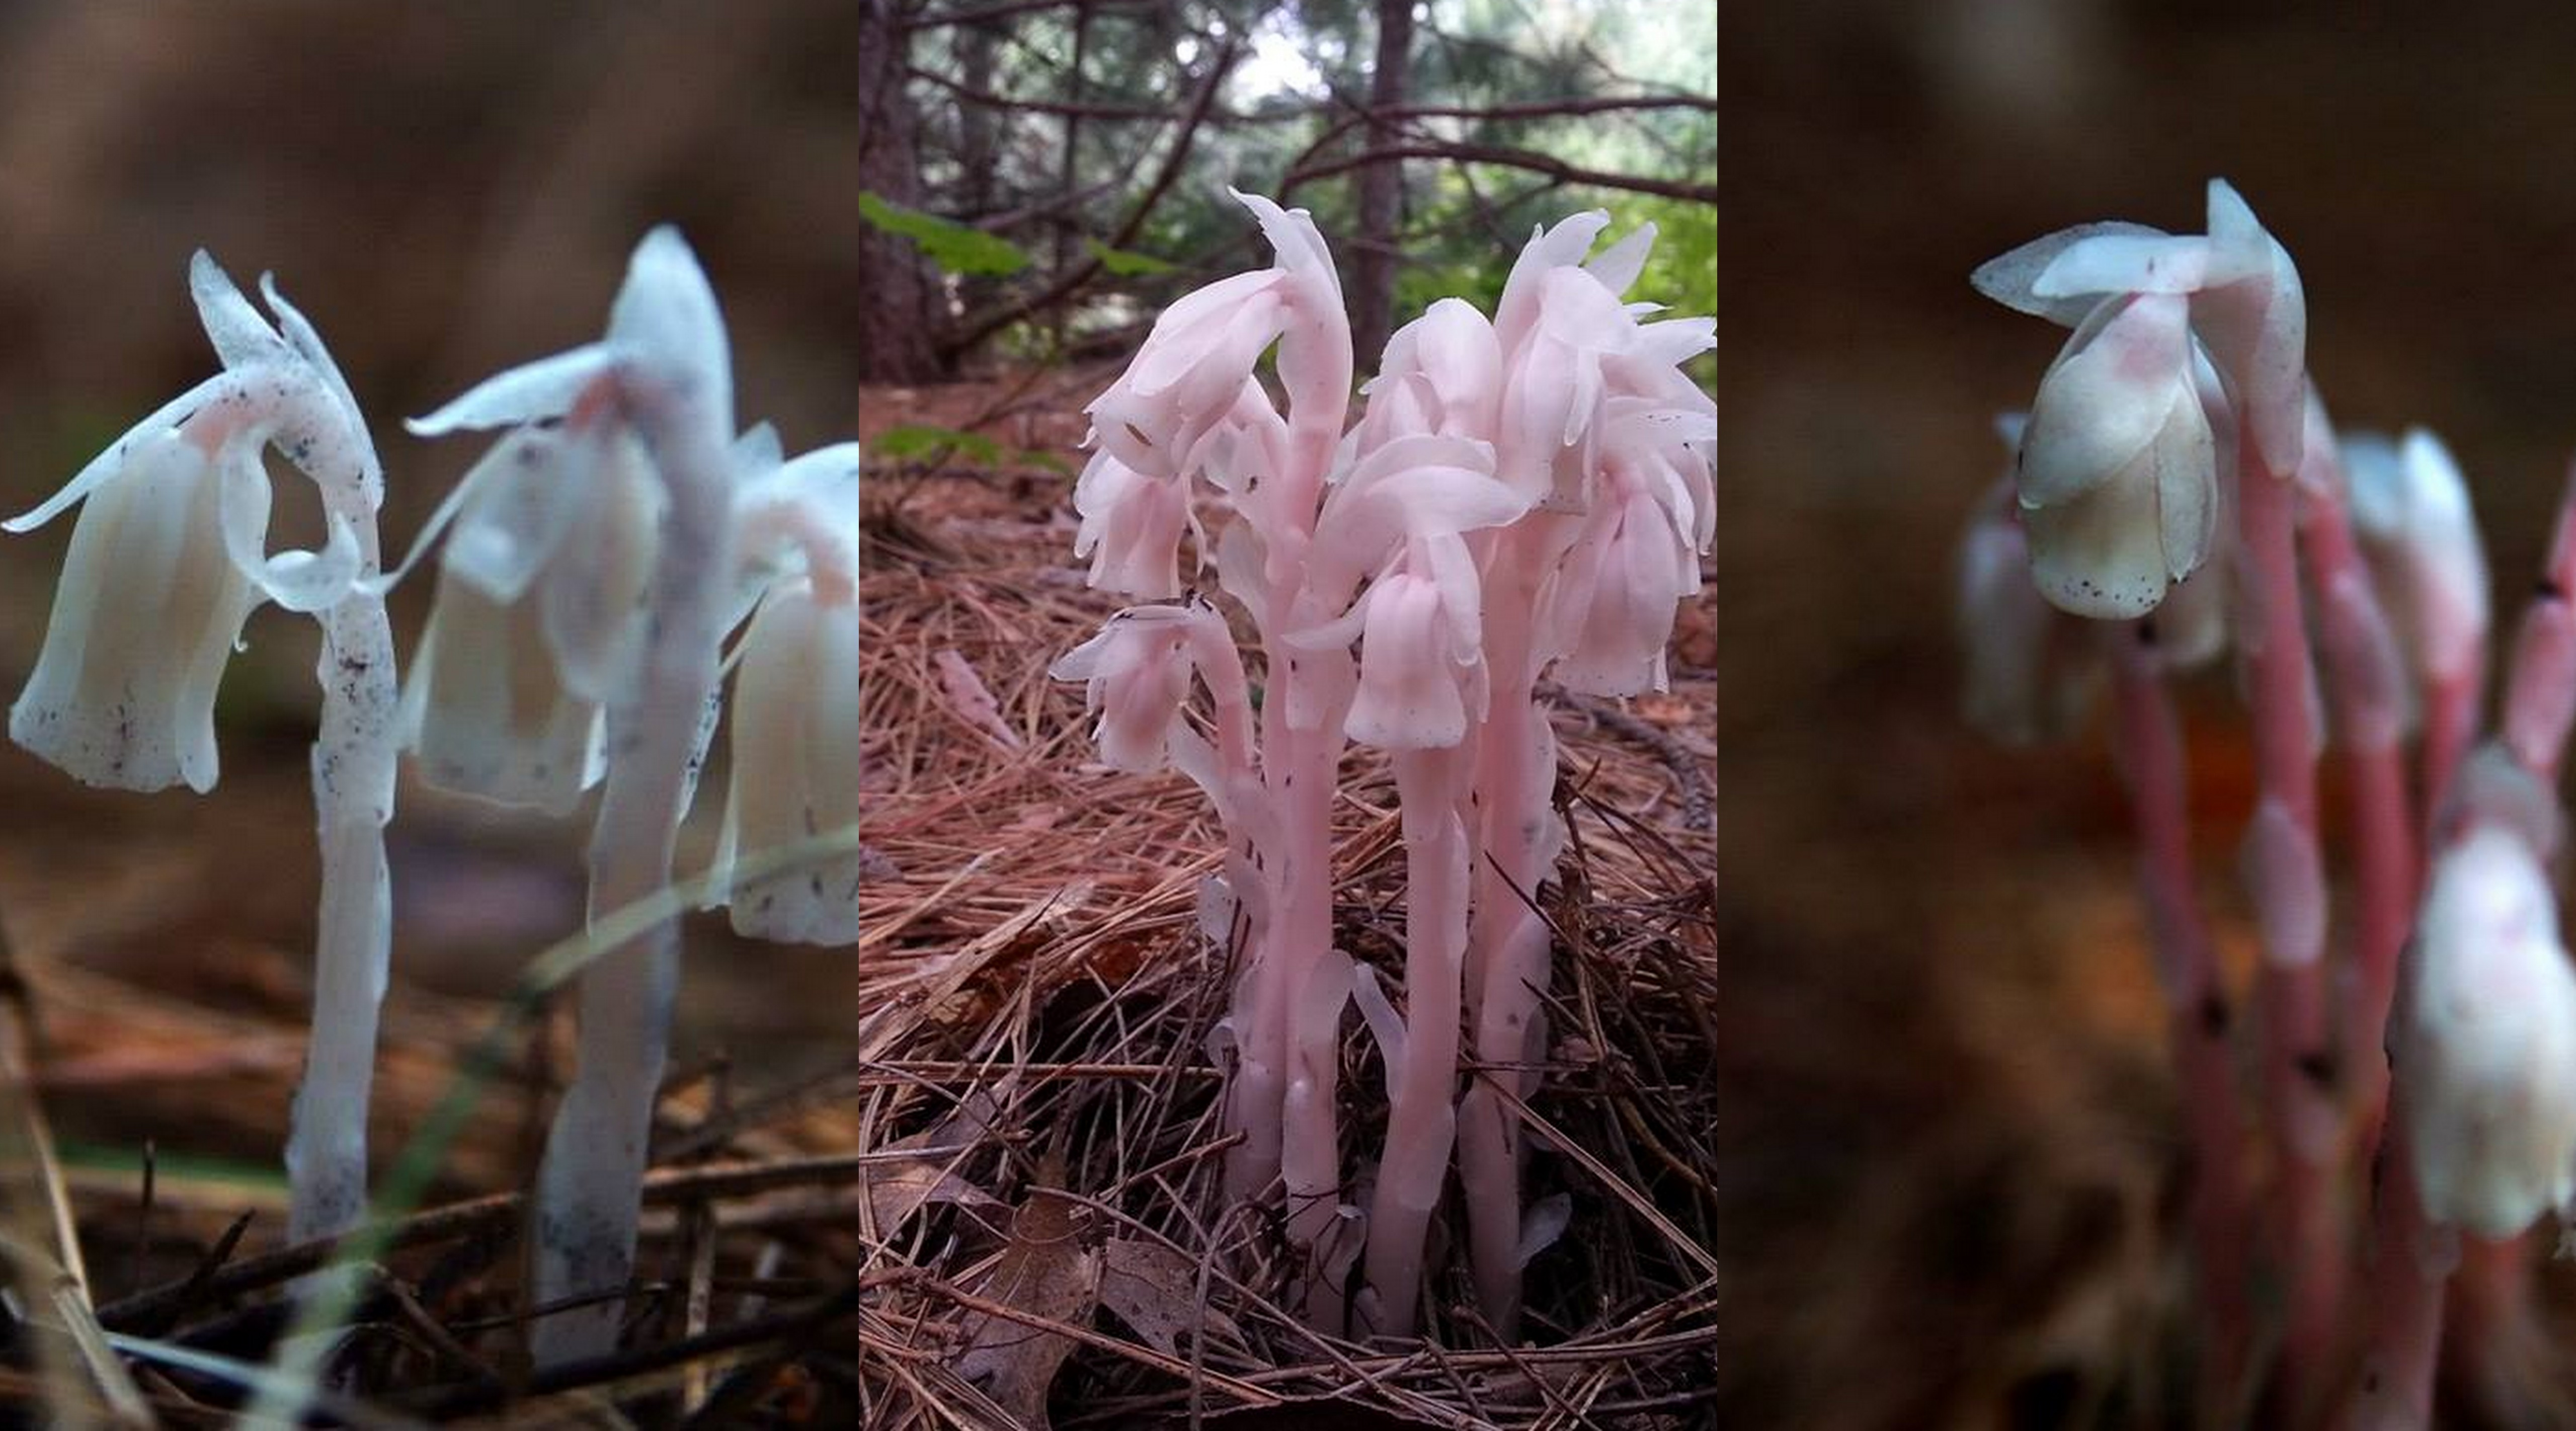 Color range of ghost plant. Fun fact: these photos were taken less than 10 minutes and 30 feet apart. Photo: Katie Grzesiak